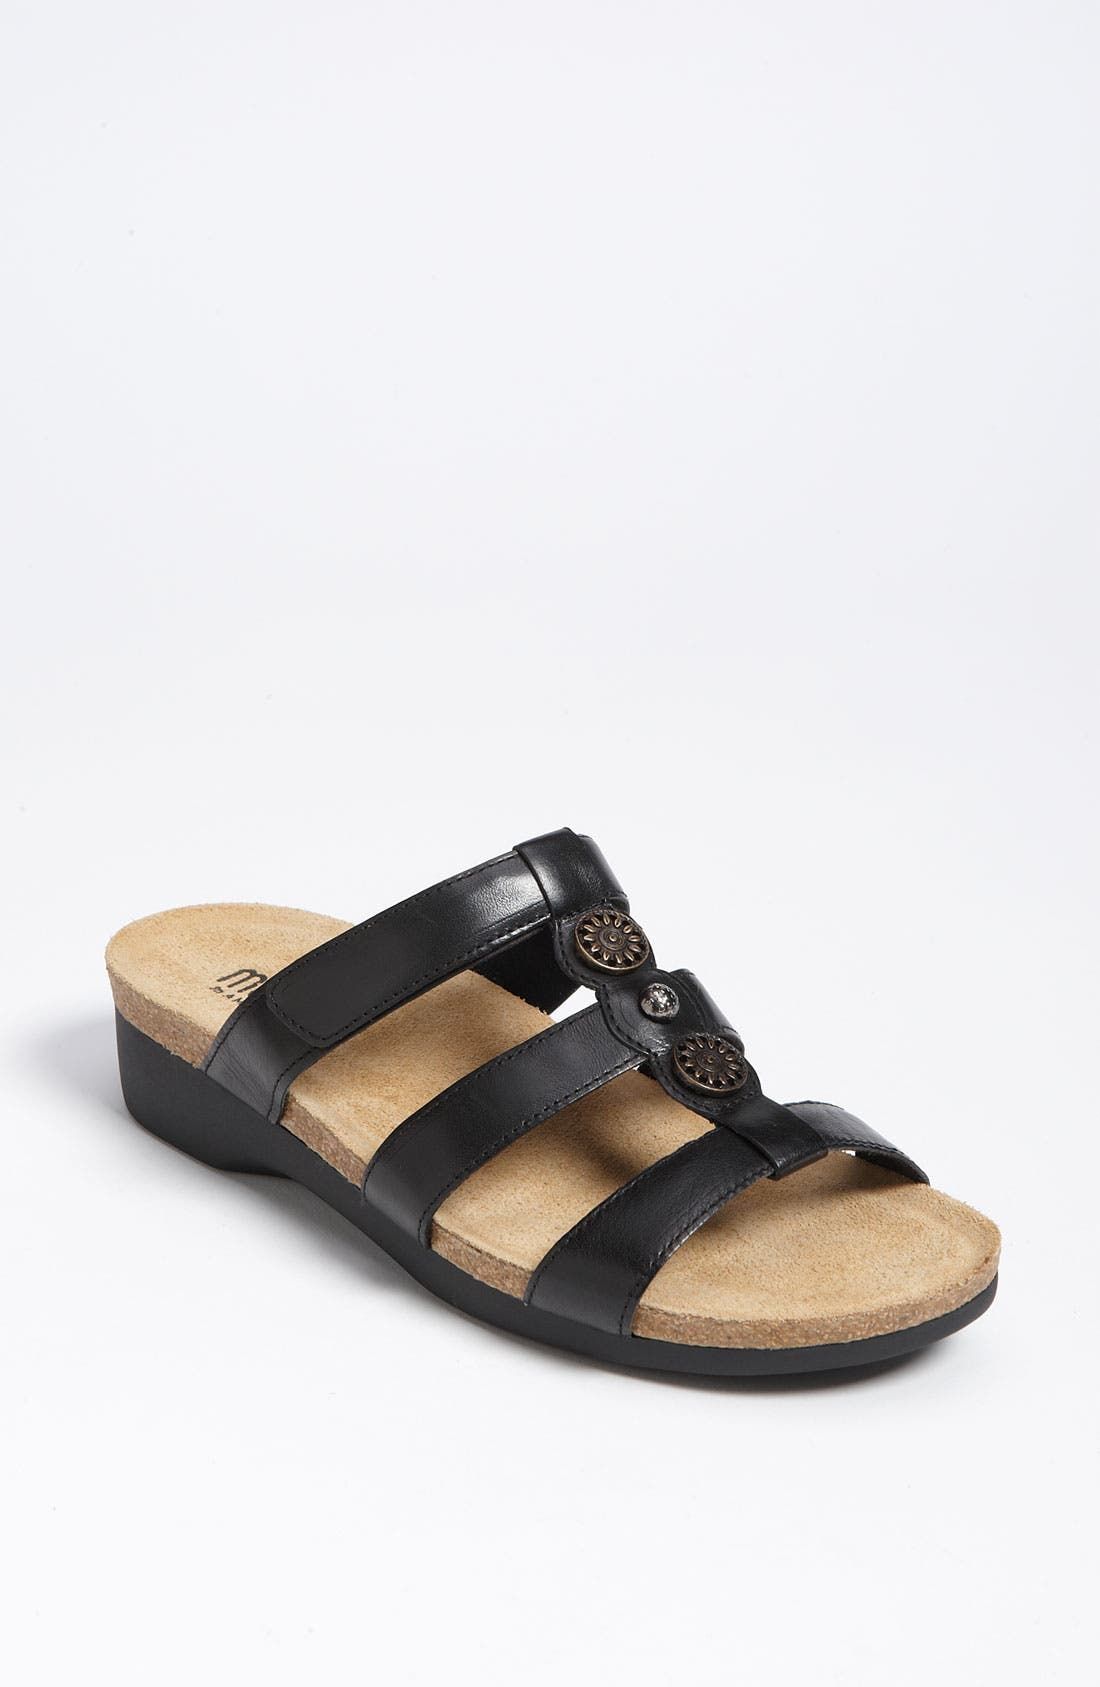 Alternate Image 1 Selected - Munro 'Virgo' Sandal